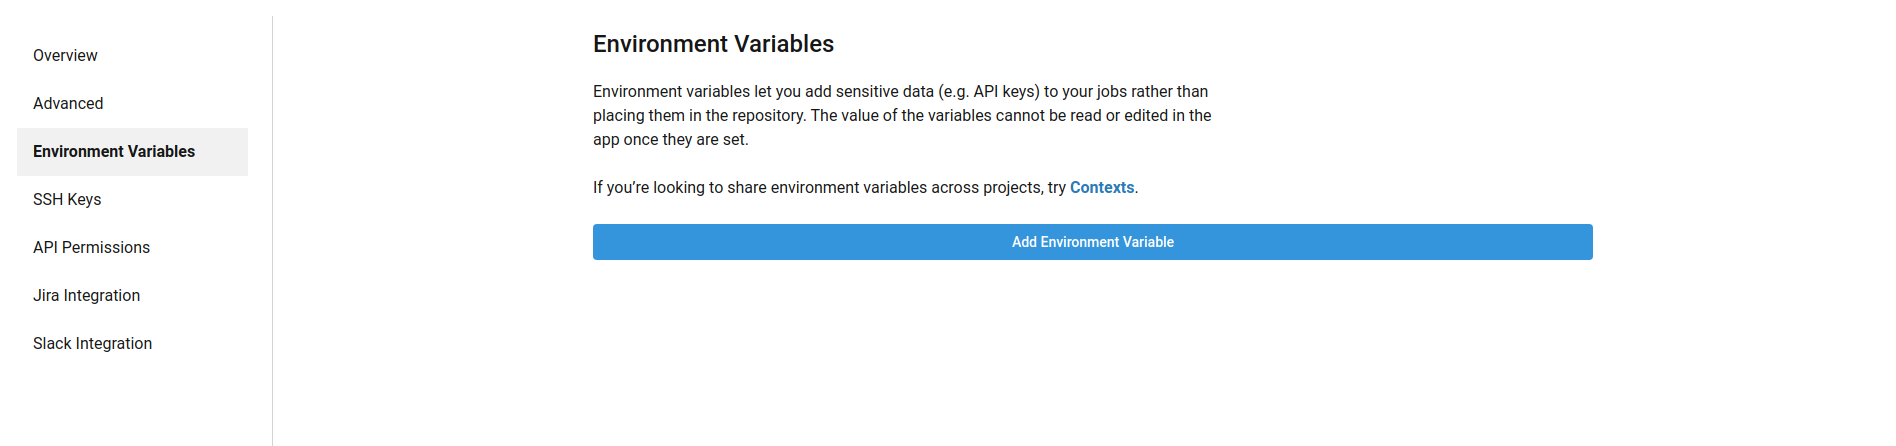 Environment Variables section of the settings page